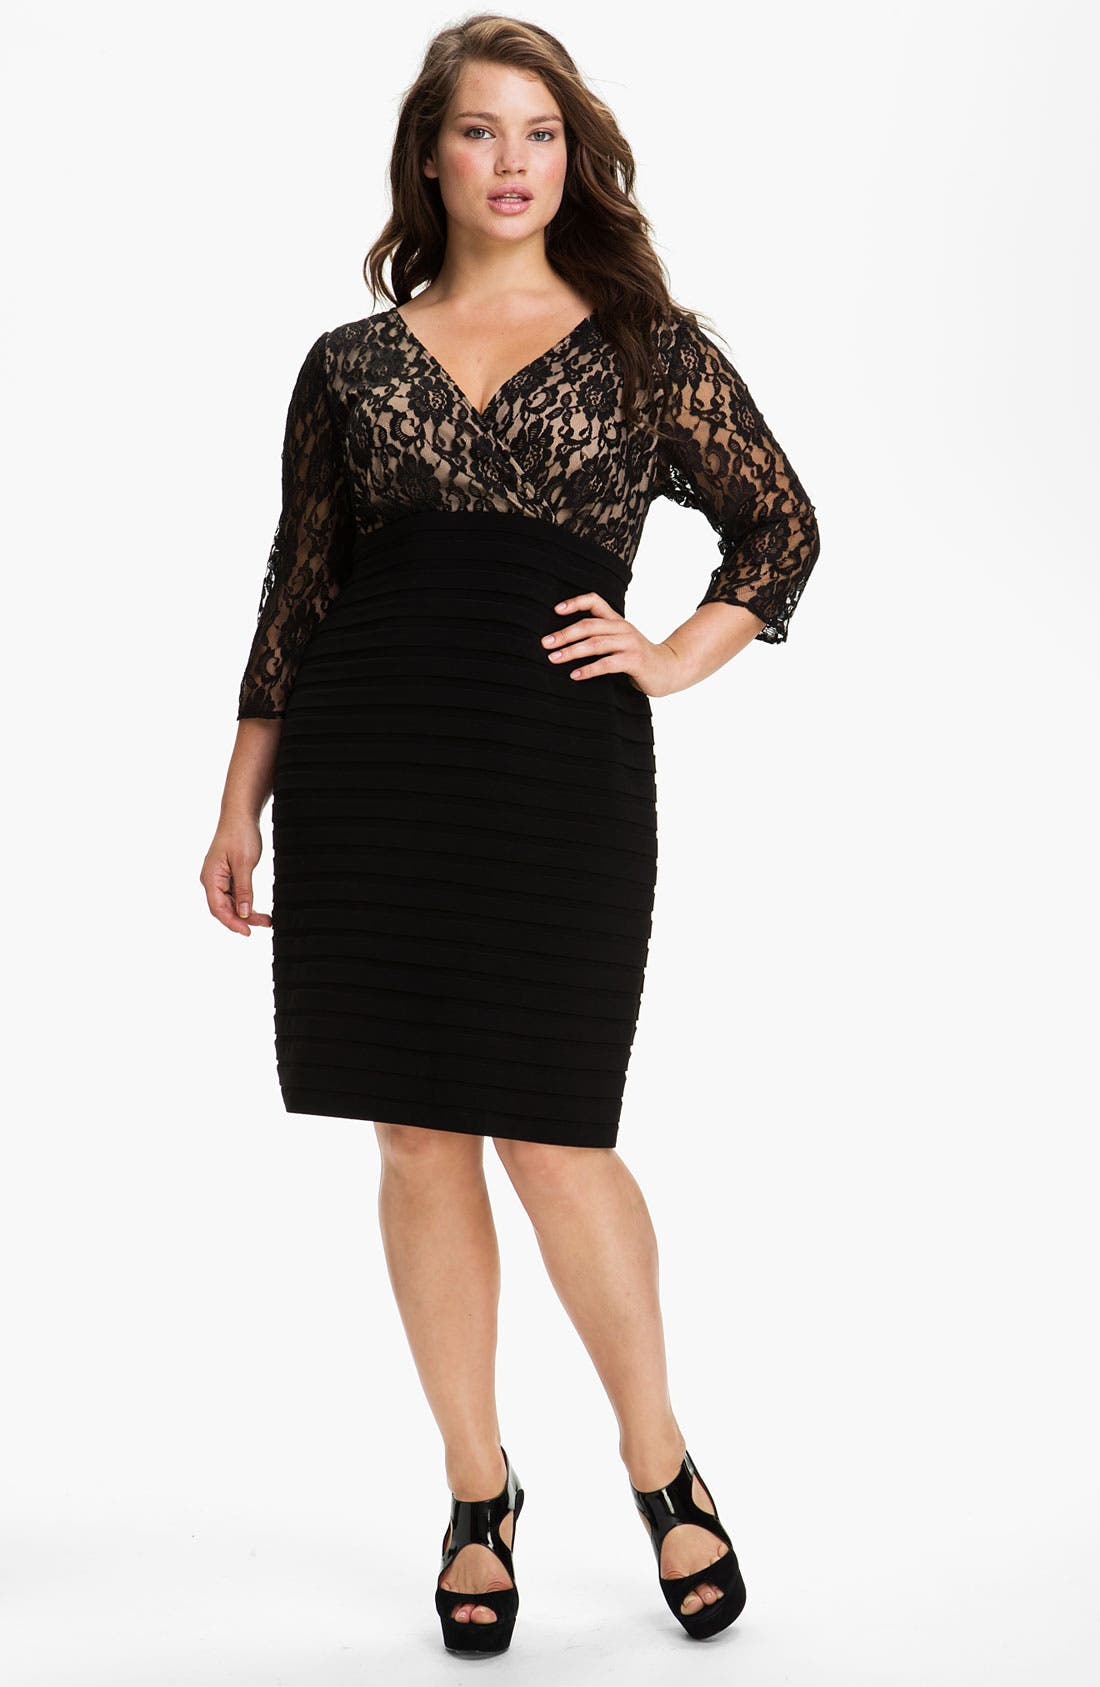 Alternate Image 1 Selected - Adrianna Papell Lace Bodice Banded Sheath Dress (Plus Size)